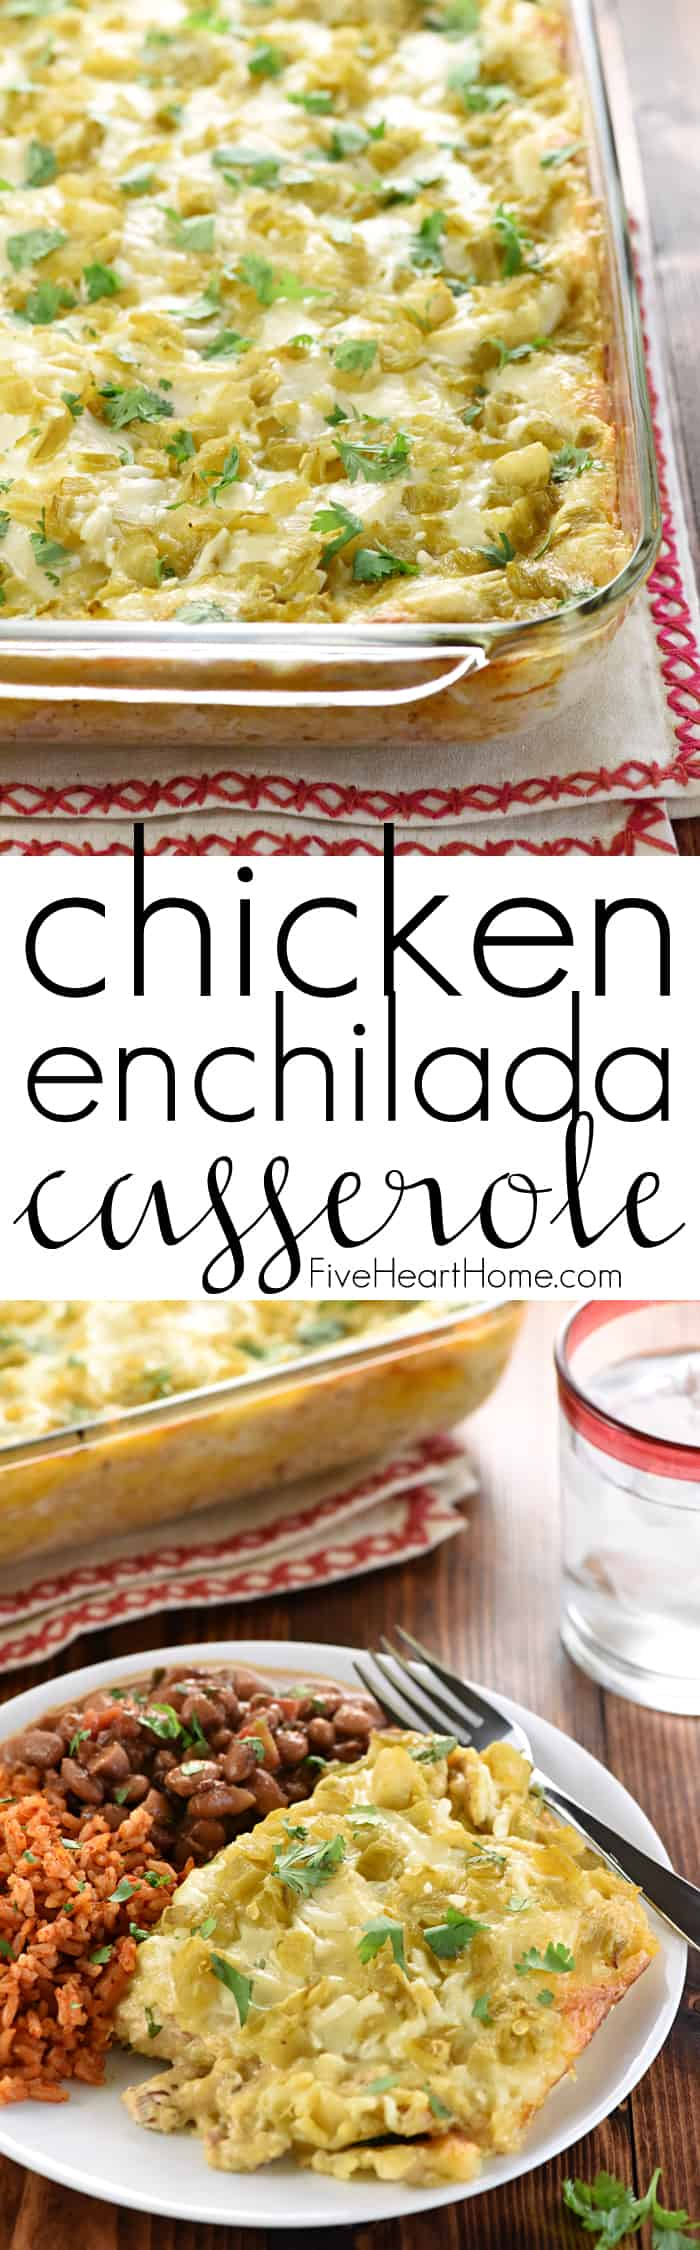 Chicken Enchilada Casserole ~ salsa verde, green chiles, and a creamy homemade sauce make this stacked Chicken Enchilada Casserole as delicious as the original without all the work of rolling them! | FiveHeartHome.com via @fivehearthome